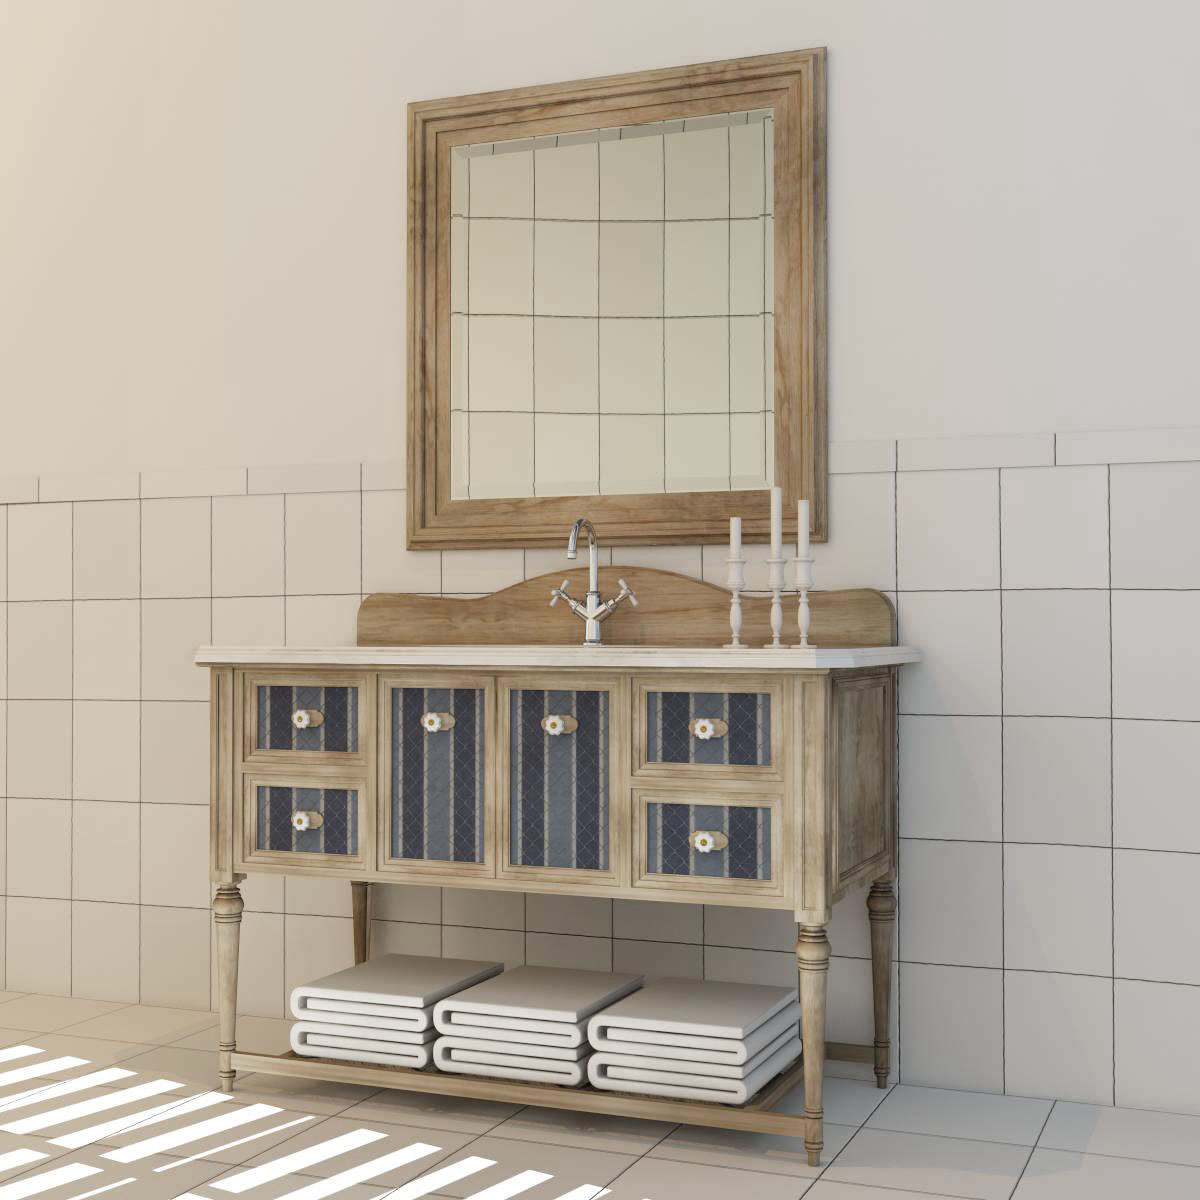 Vintage Bathroom Cabinet 3d Model Max Obj Fbx